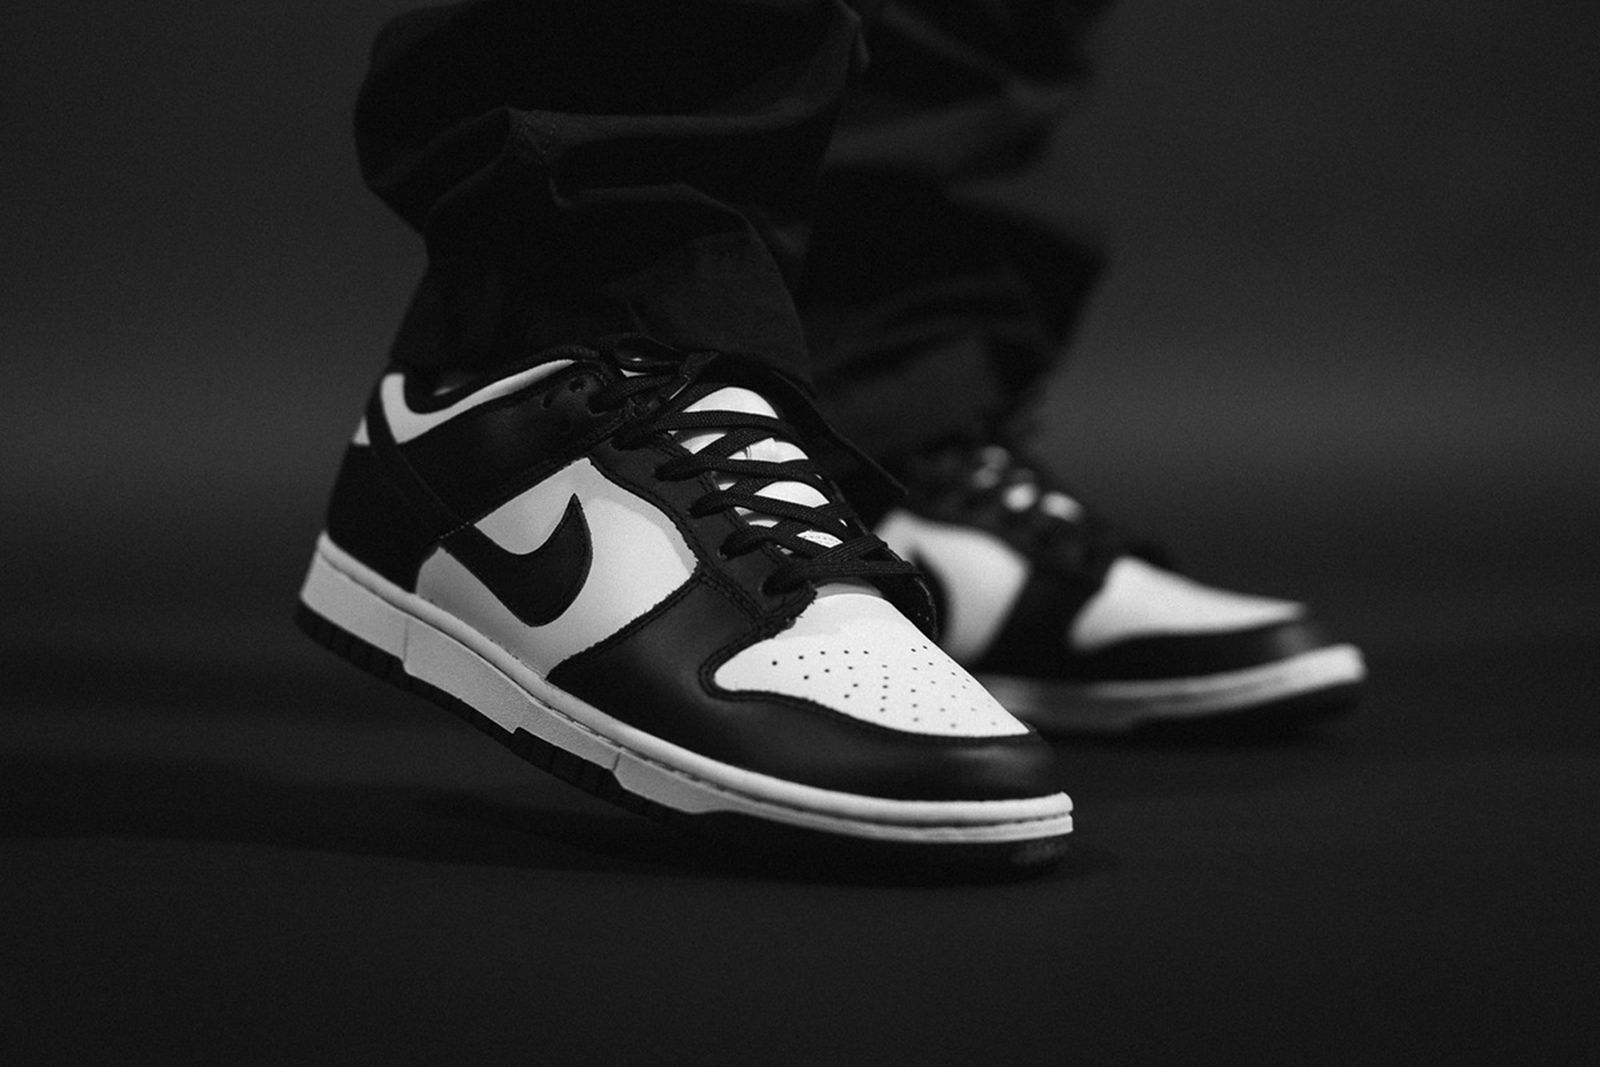 nike-dunk-low-black-white-release-date-price-04